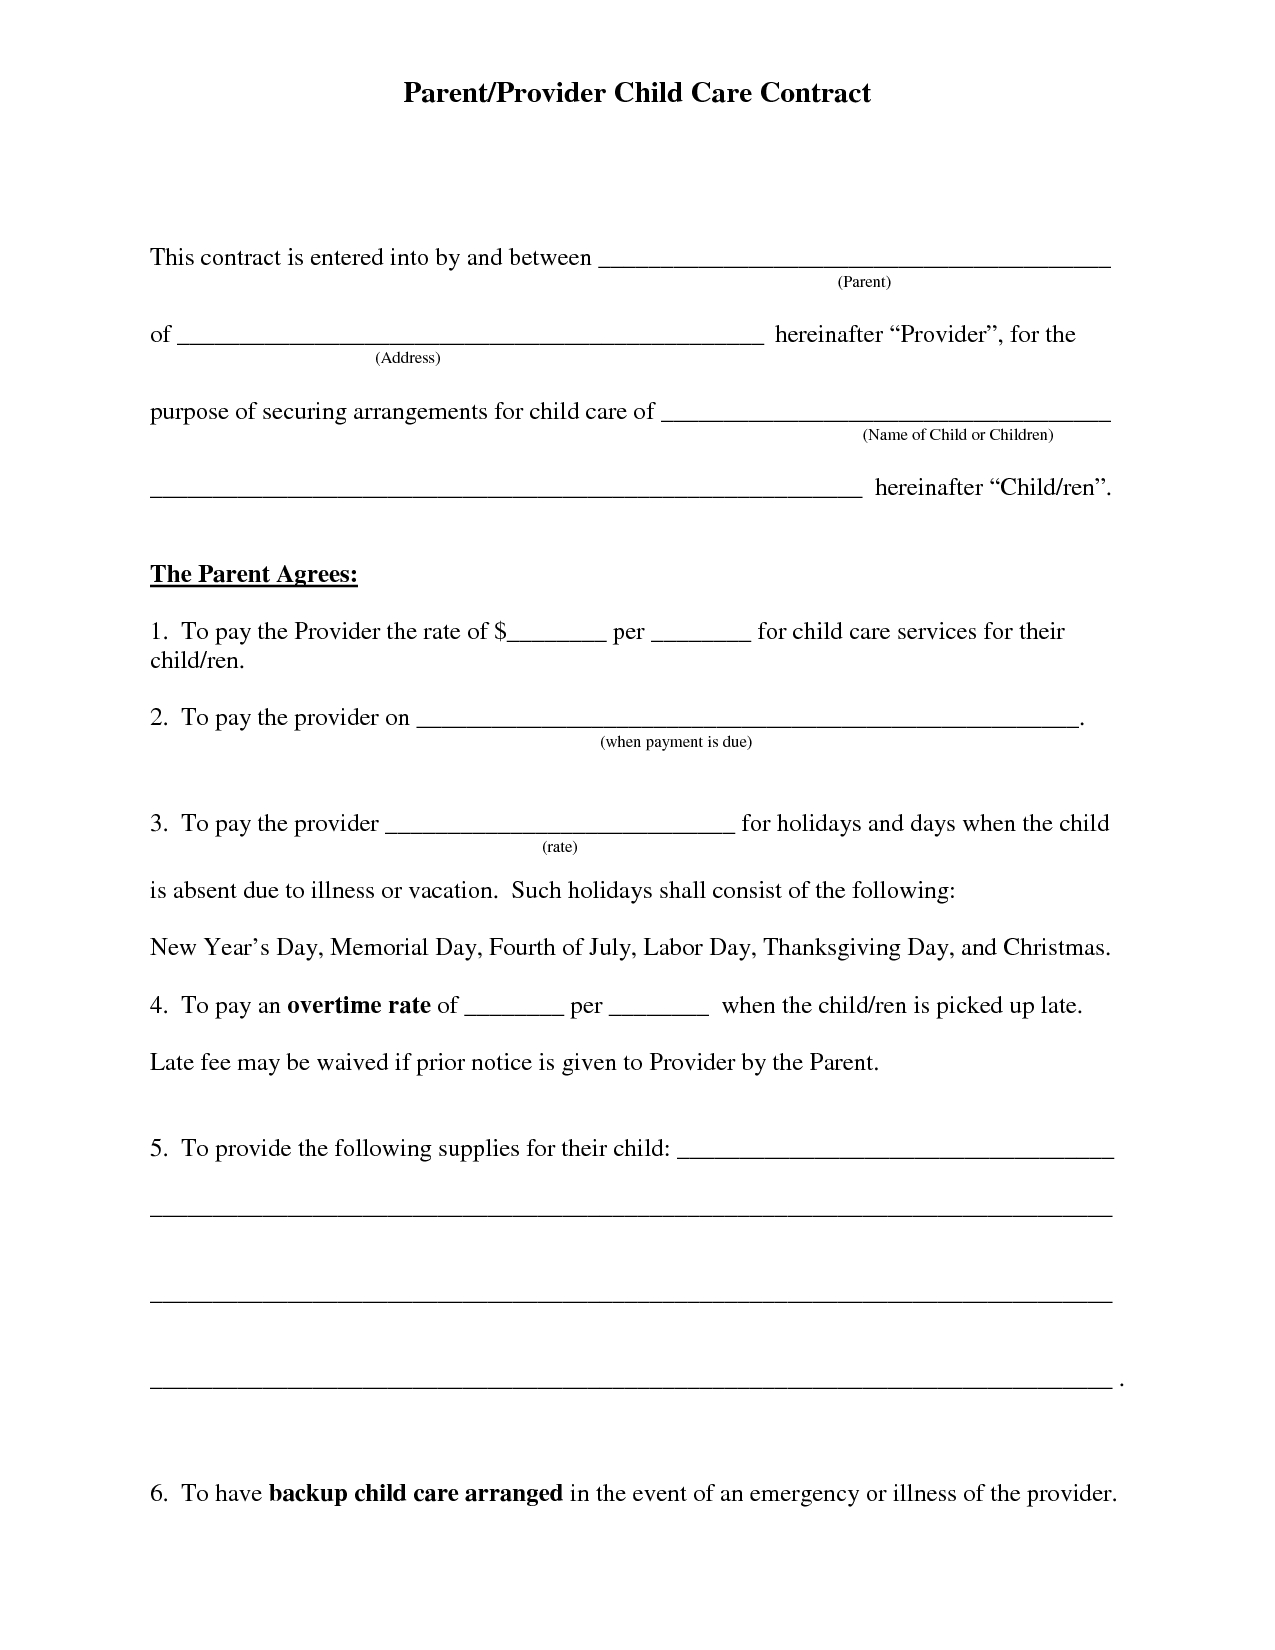 Free+Daycare+Contract+Forms | Printable Daycare Forms | Pinterest - Free Printable Daycare Forms For Parents